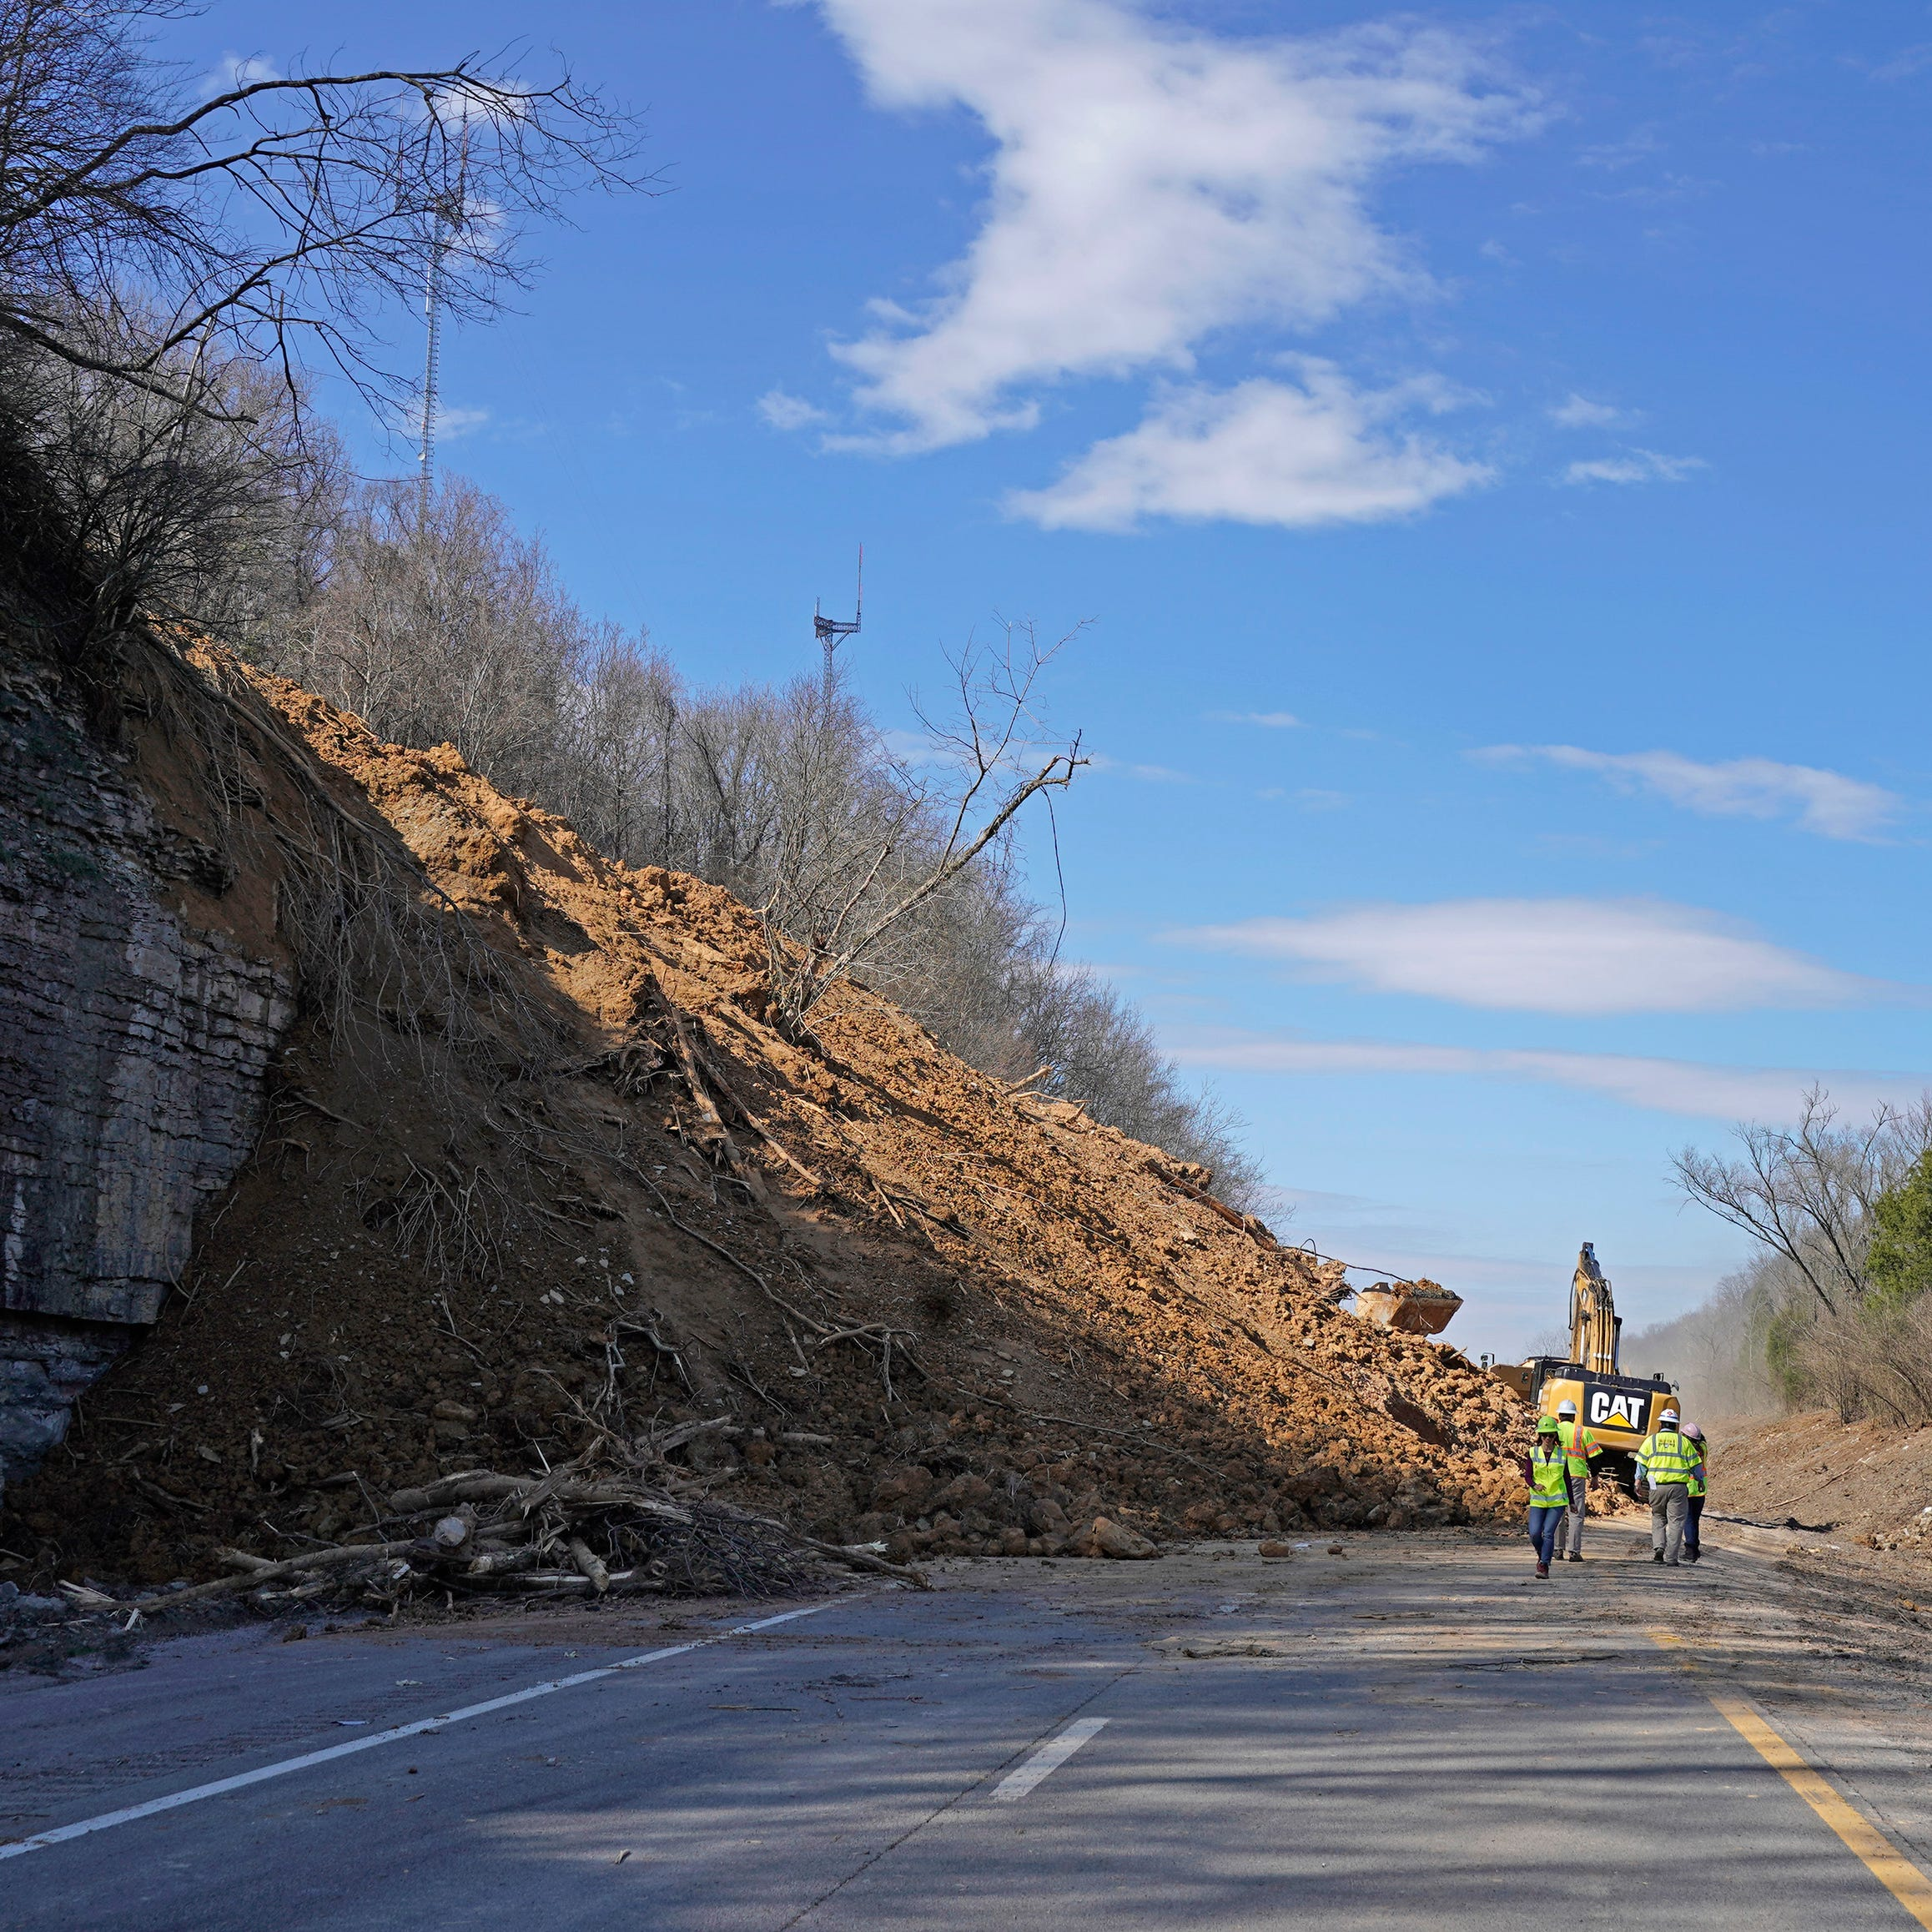 I-24 mudslide: Eastbound lane between Clarksville and Nashville reopened Wednesday, ahead of schedule